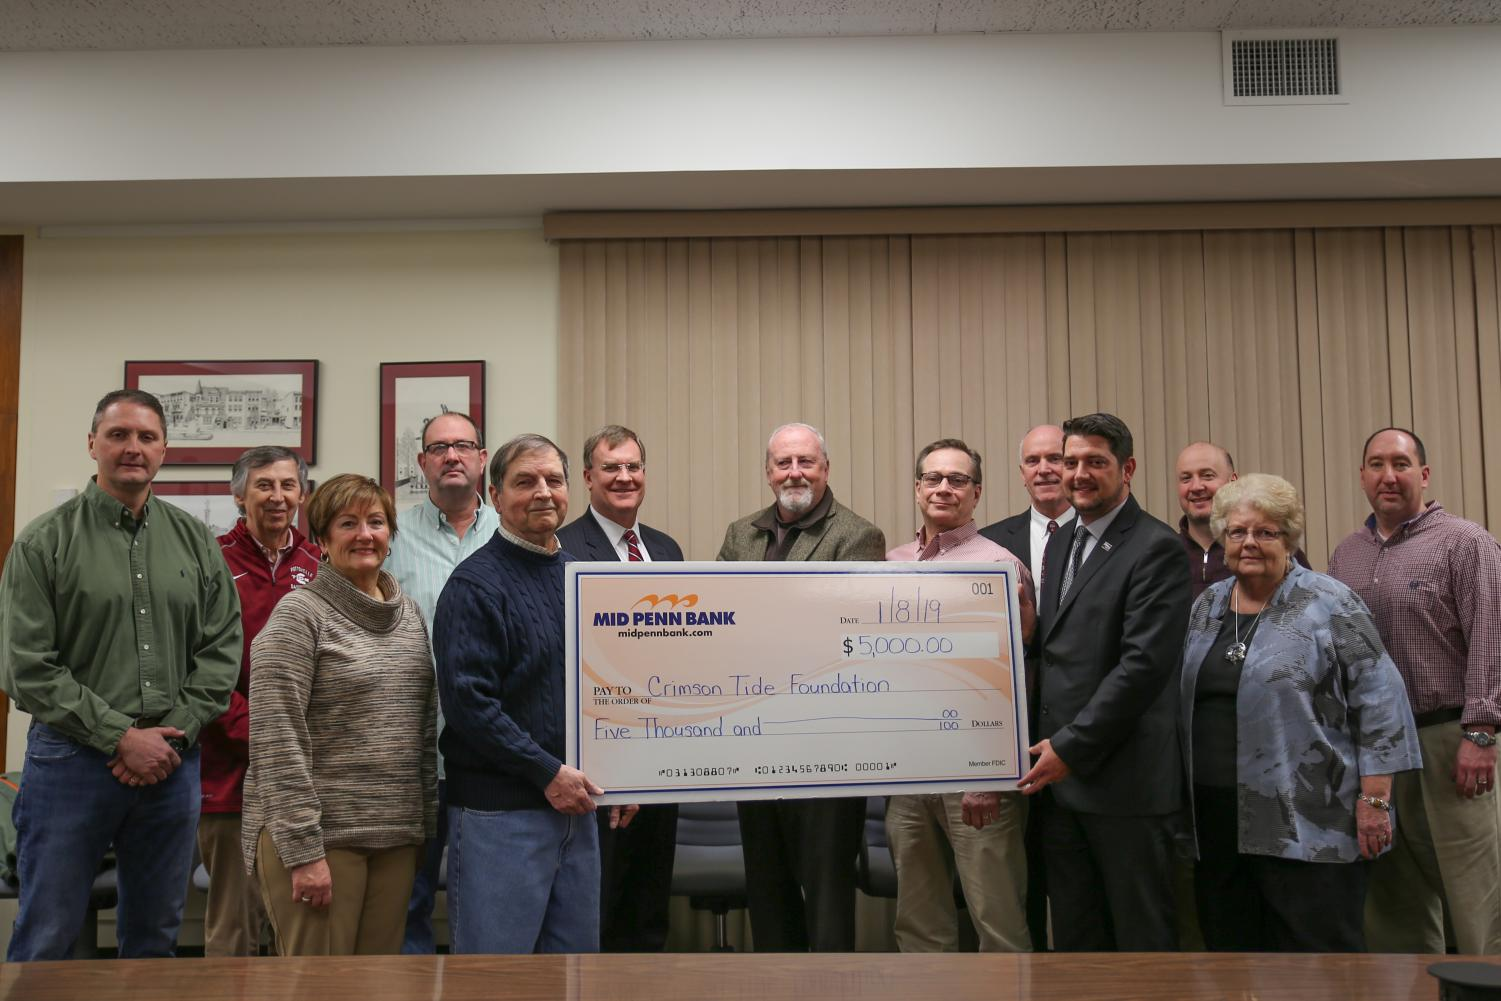 Members of the Crimson Tide Foundation pose with the $5,000 check from Mid Penn Bank. From left back row: Cory Holobetz, Ned Connors, Pete Joyce, Dr. Jeffrey Zwiebel, Craig Shields, Vince Wychunas, Jim Brennan of Mid Penn Bank, Adrian Portland, Bob Dusel Jr.—front row left Lillian Hobbs, John Liddle, Keith Kirby of Mid Penn Bank, Kathy Zwiebel